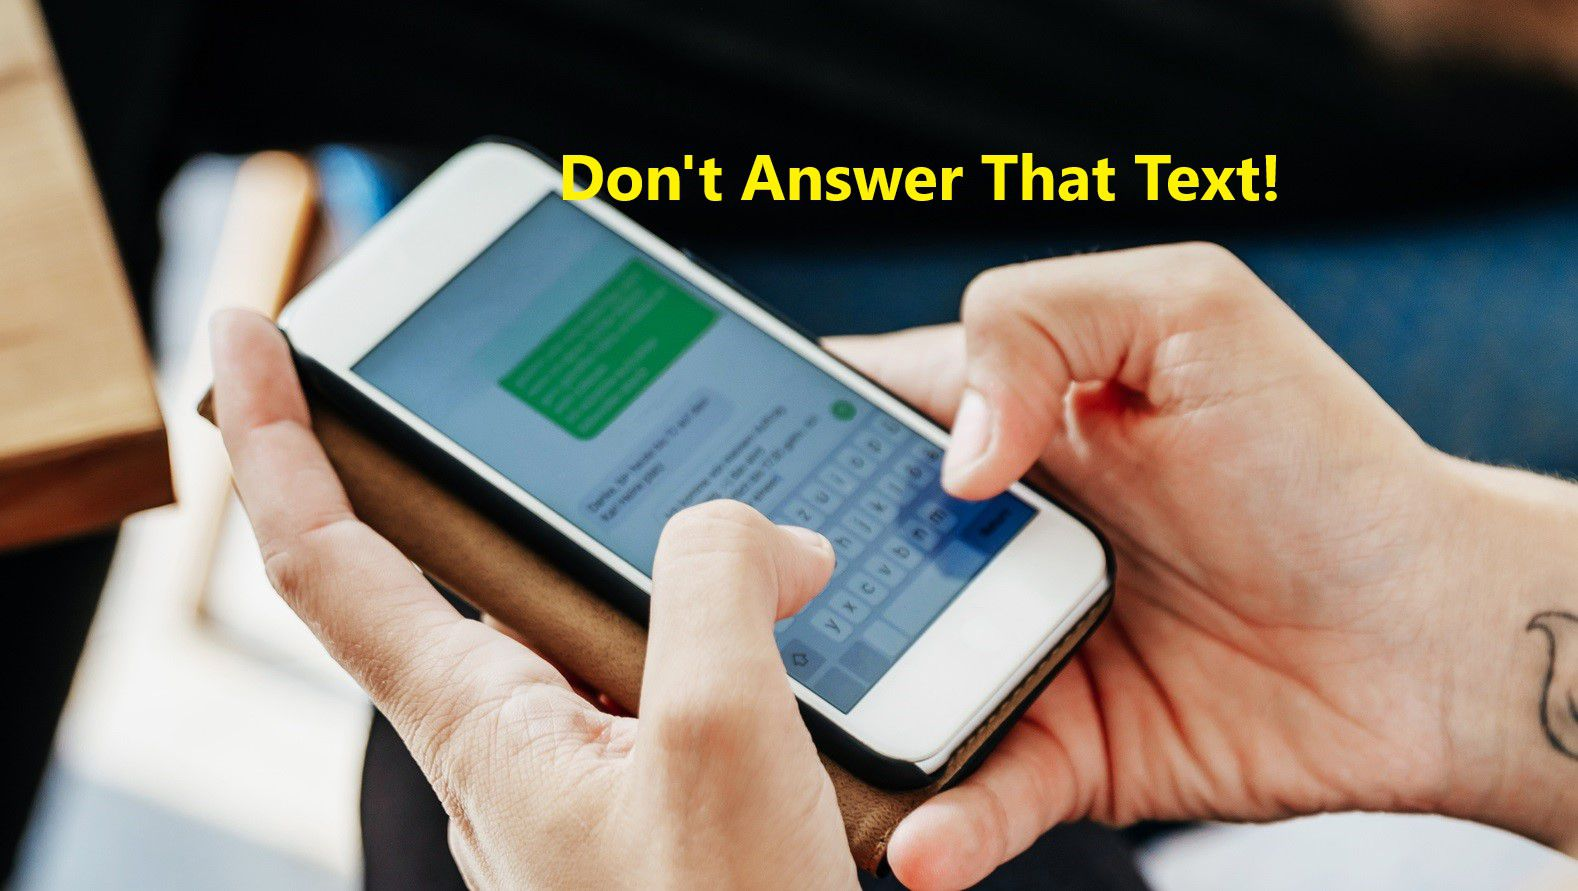 Why We Fall for Texting Scams (and How to Stop)